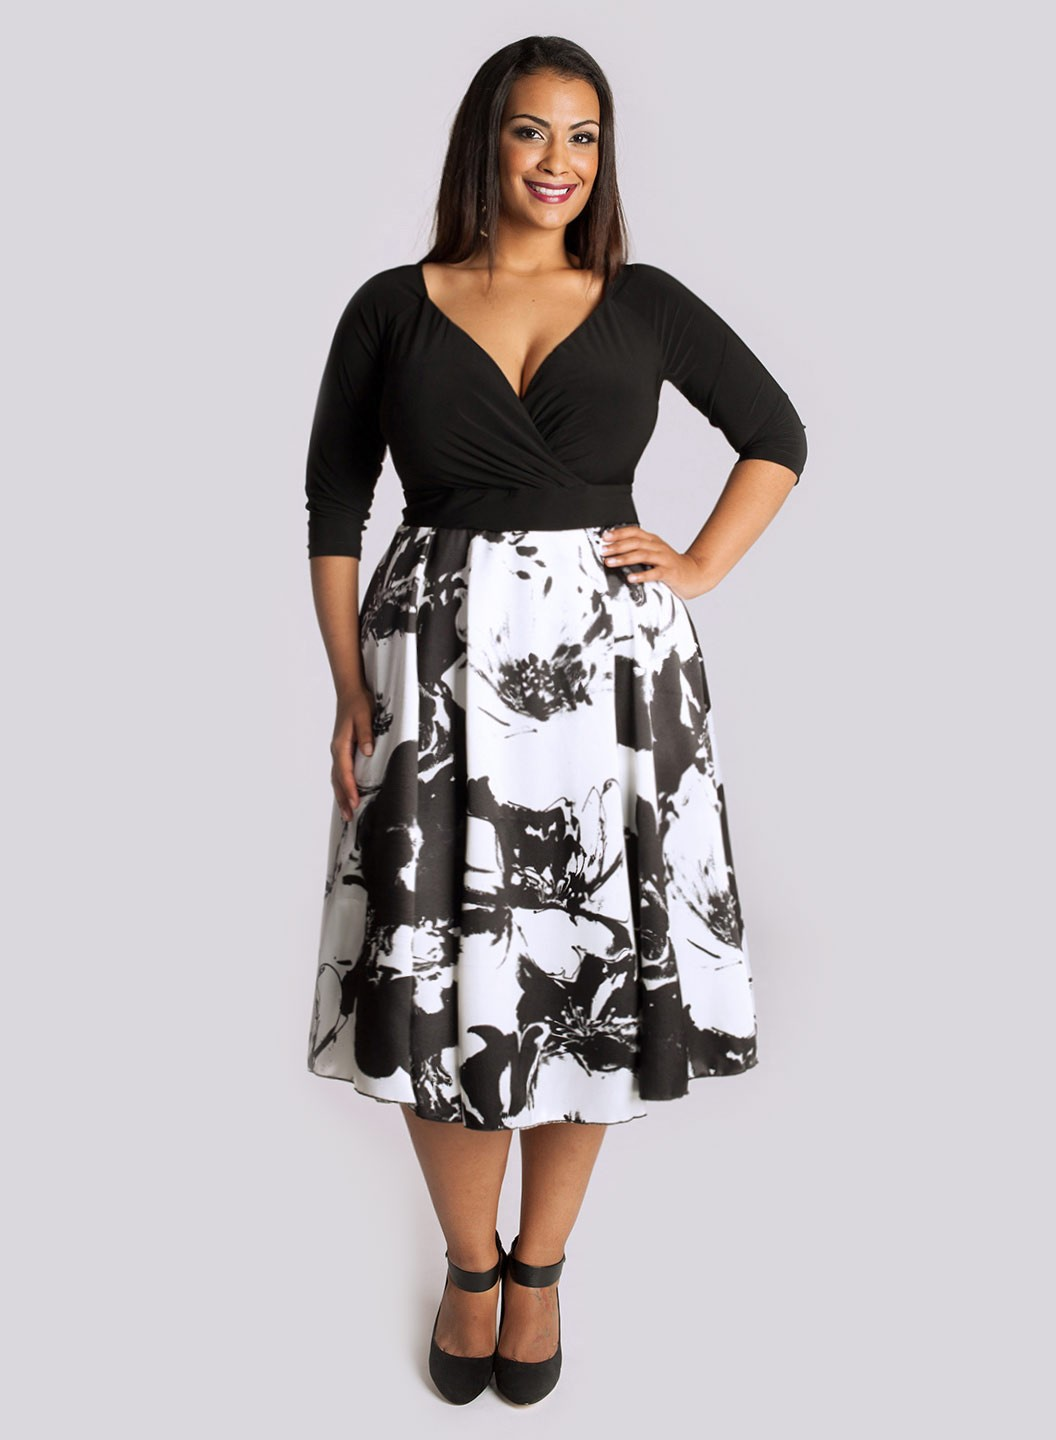 Plus size summer clothing for women plus size sundresses for women